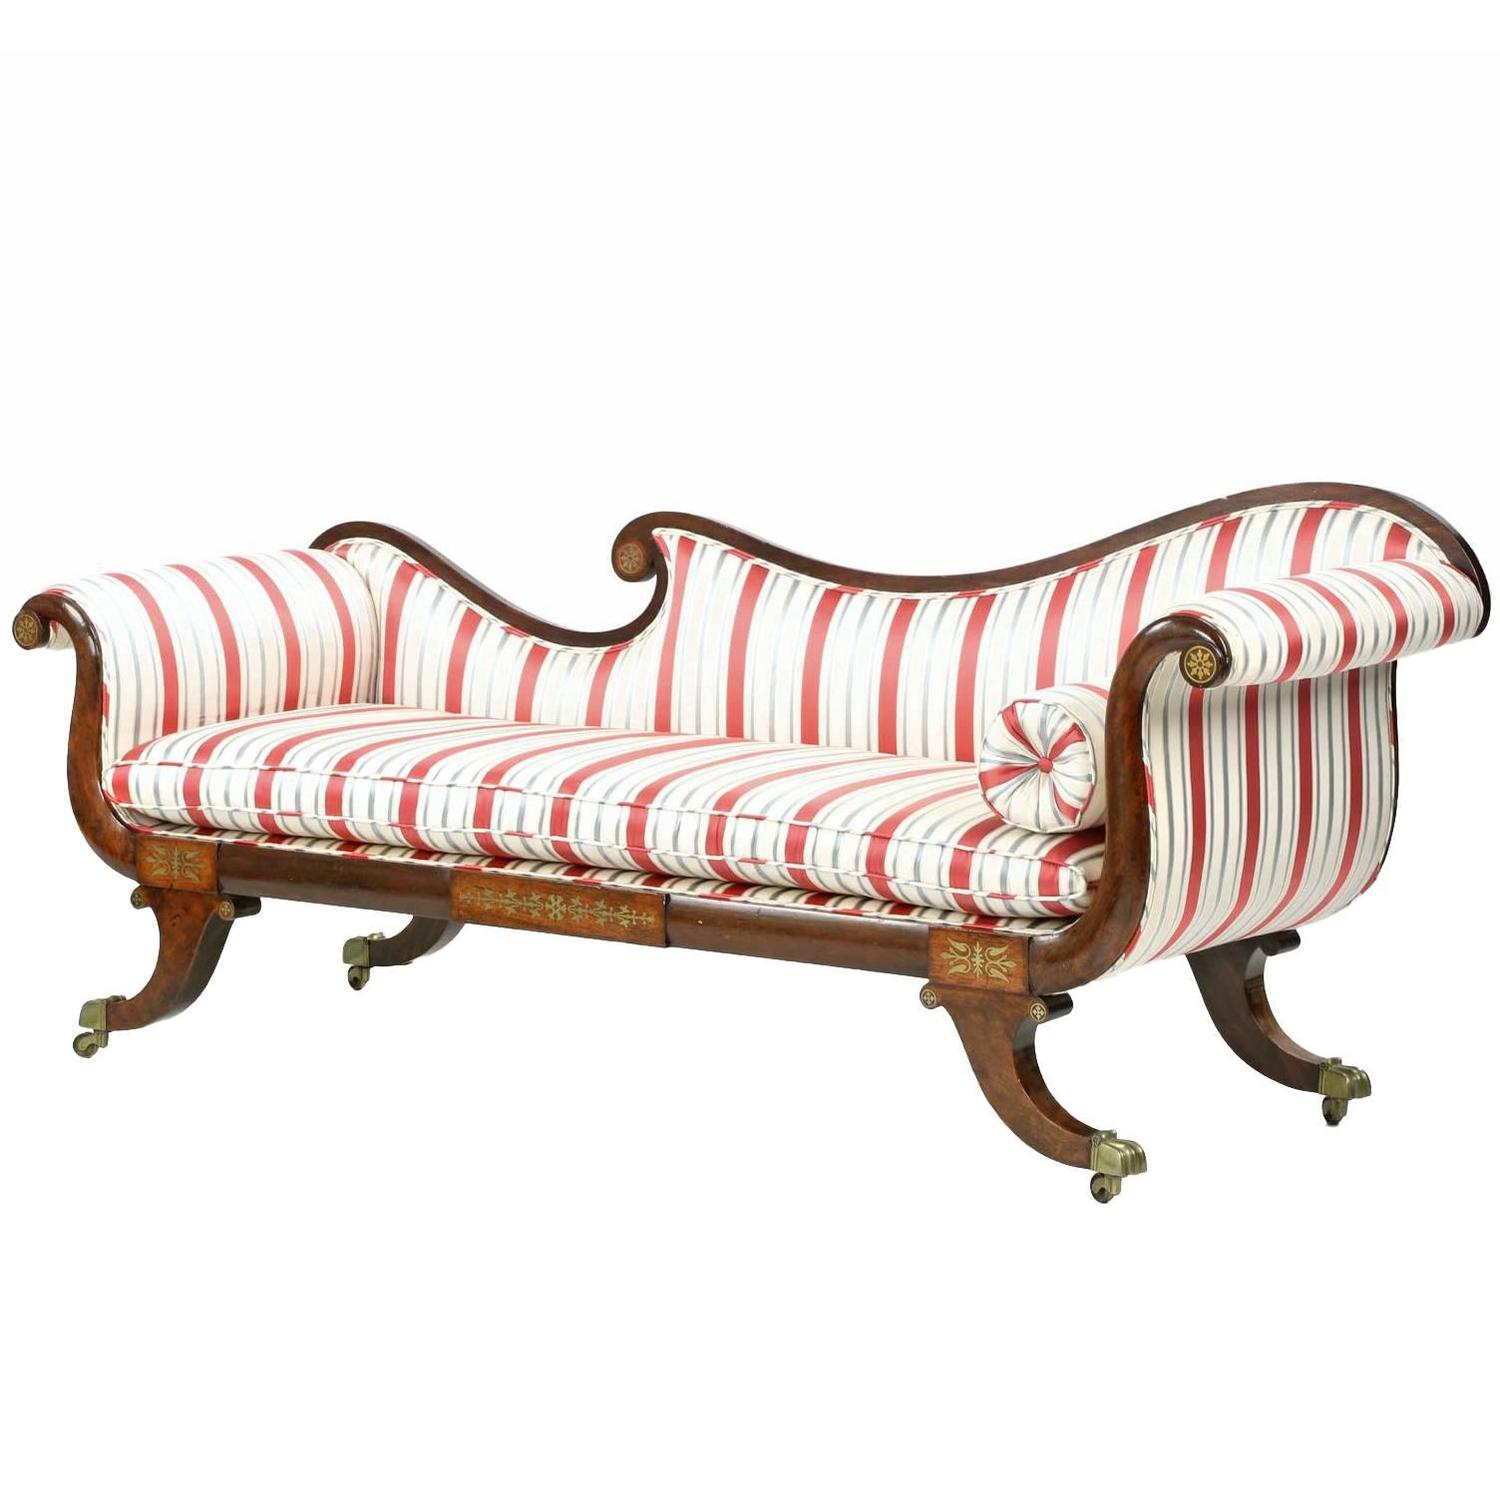 English regency brass inlaid antique recamier sofa chaise for Antique chaise sofa